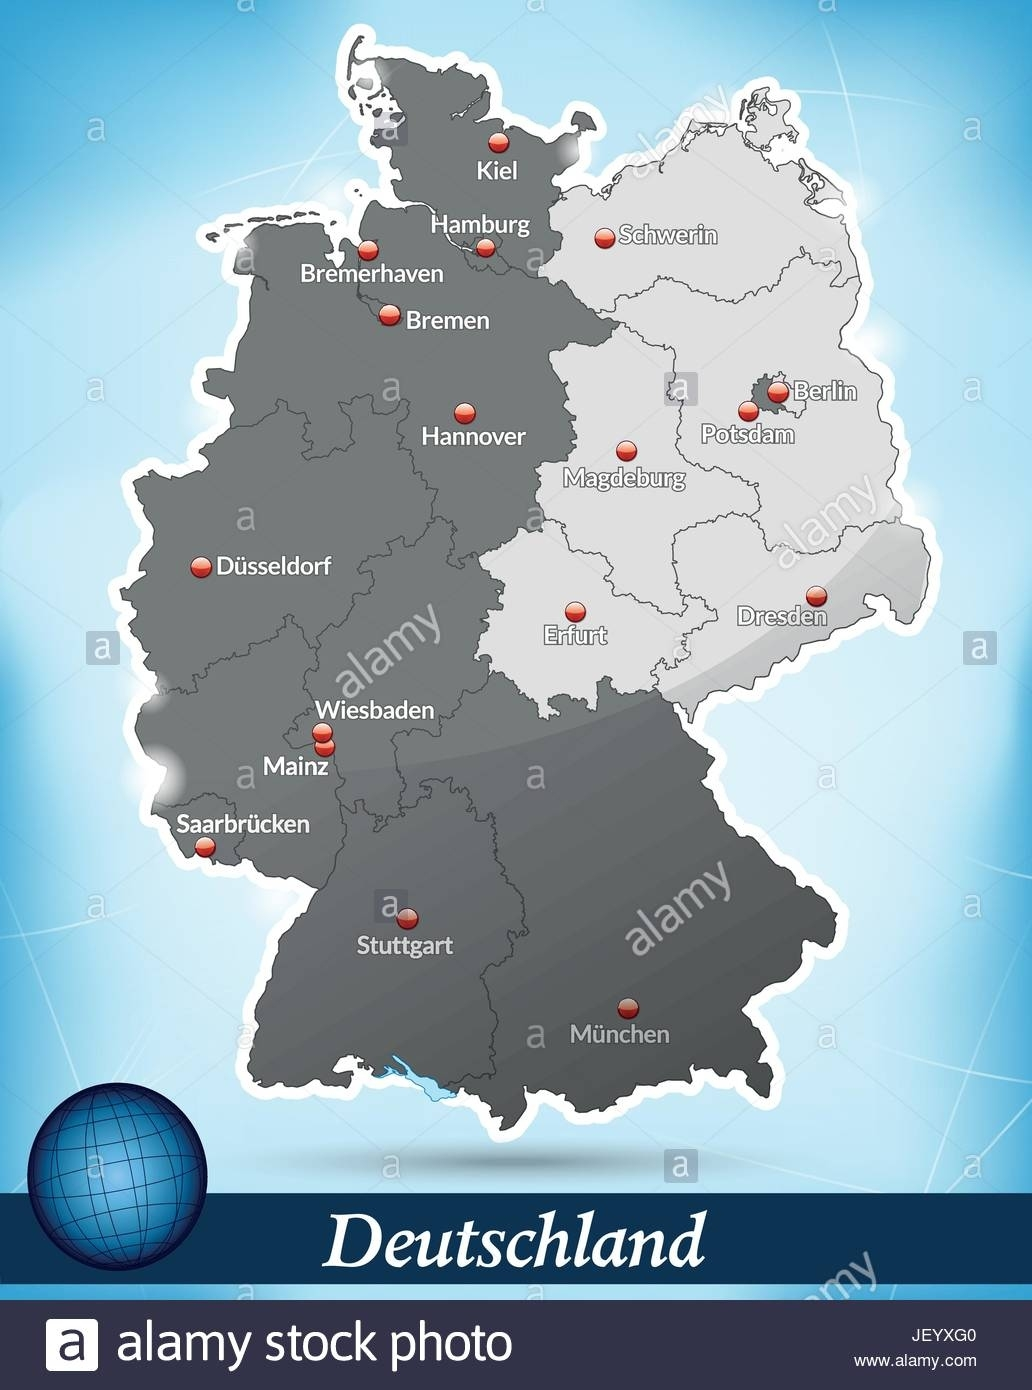 Map Of Divided Germany Stock Vector Art & Illustration, Vector Image within Divided Germany Map